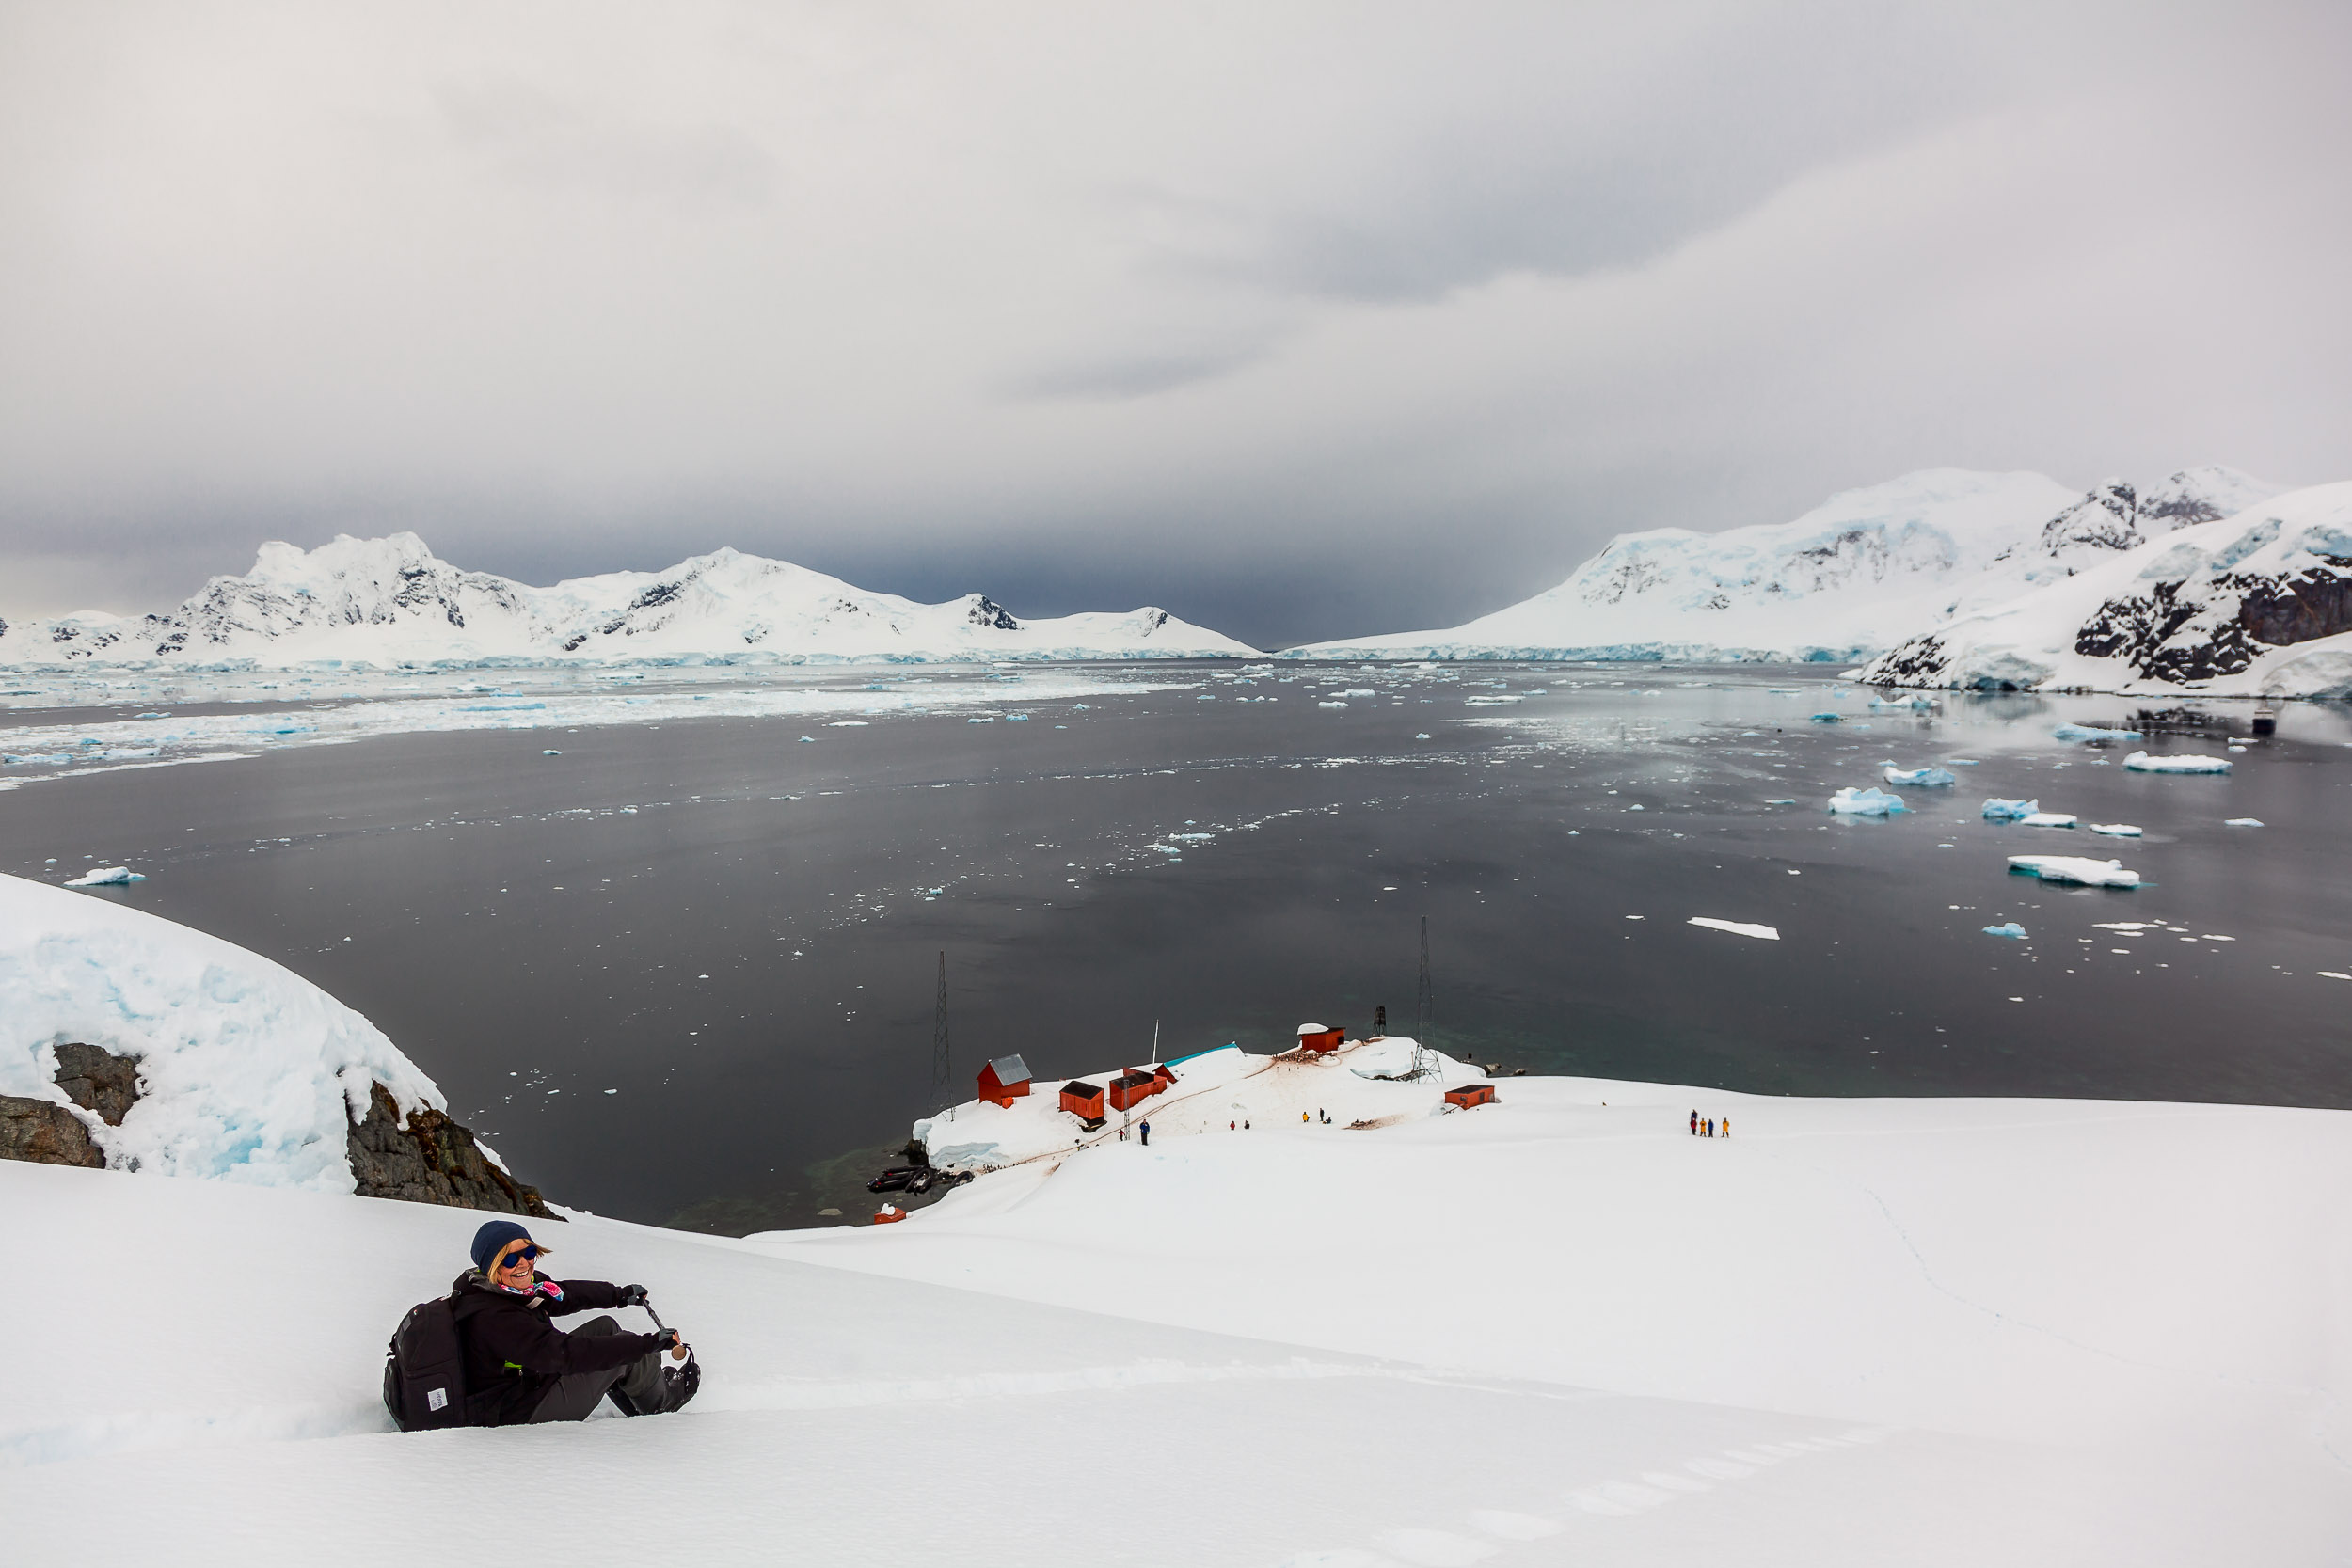 After making the arduous climb    up the hill    overlooking    Paradise Harbour in Antarctica   , it's an absolute thrill to slide down, in a fraction of the time.